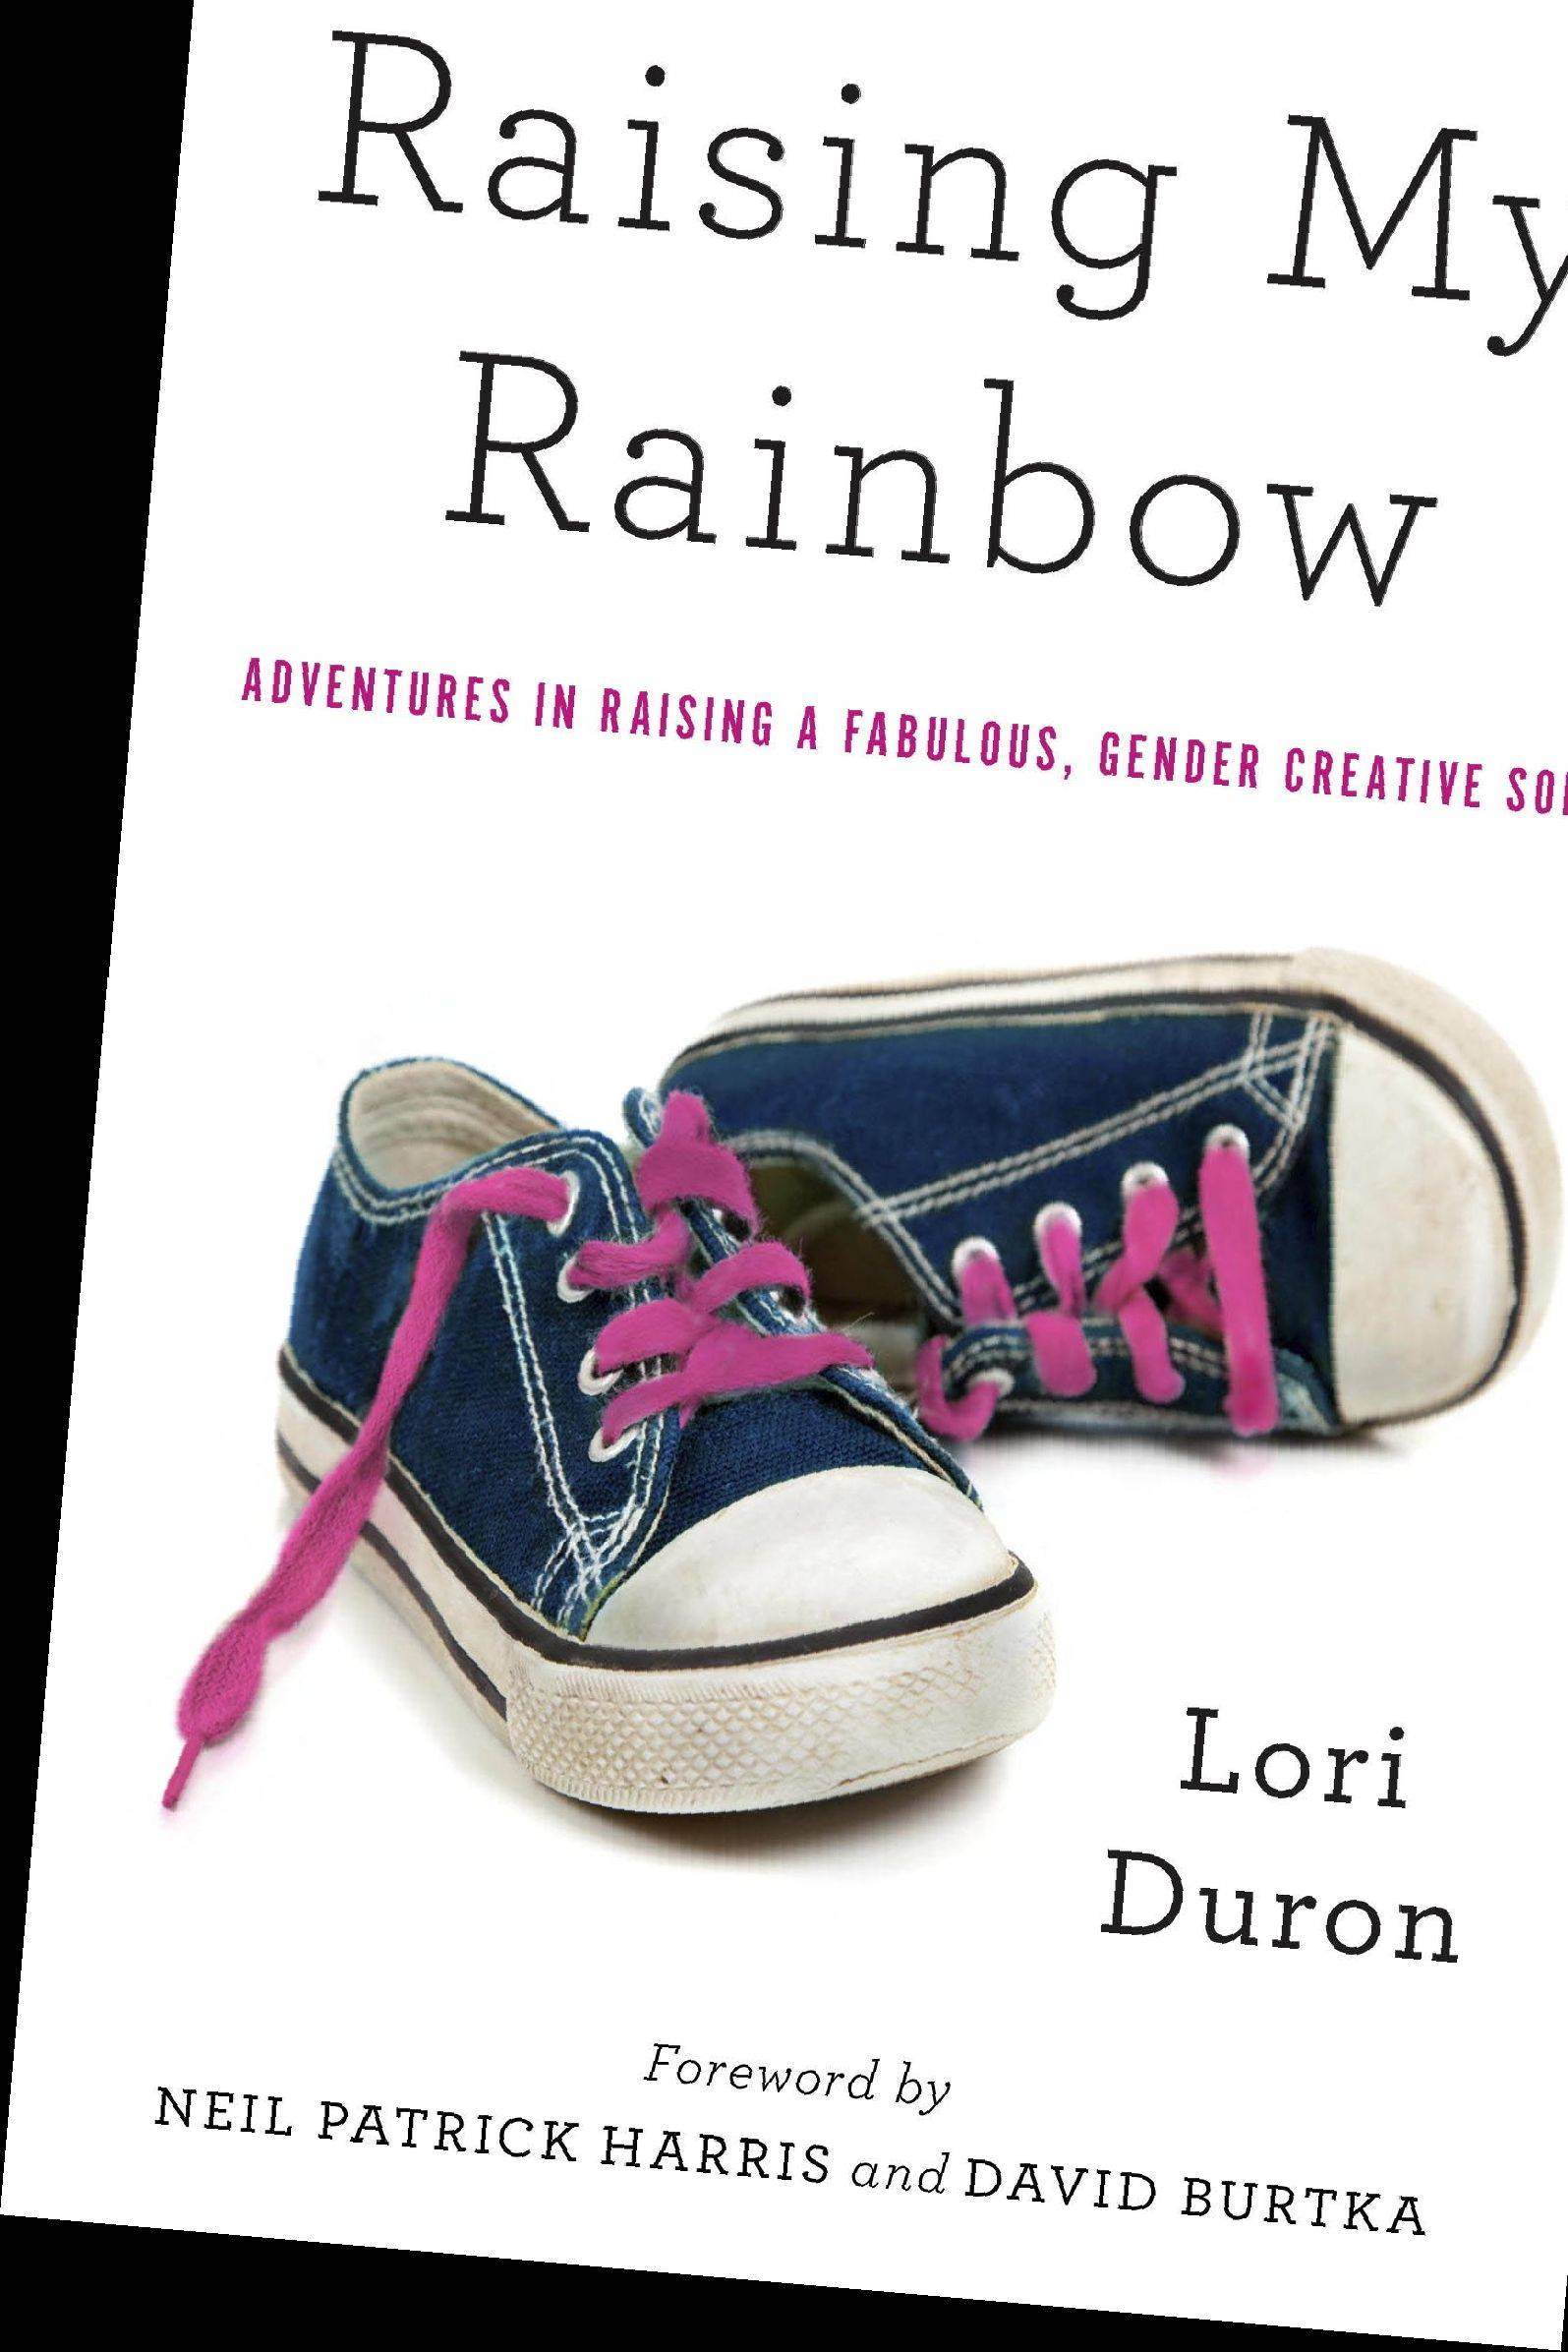 �Raising My Rainbow� by Lori Duron (Broadway Books 2013), $15, 278 pages.